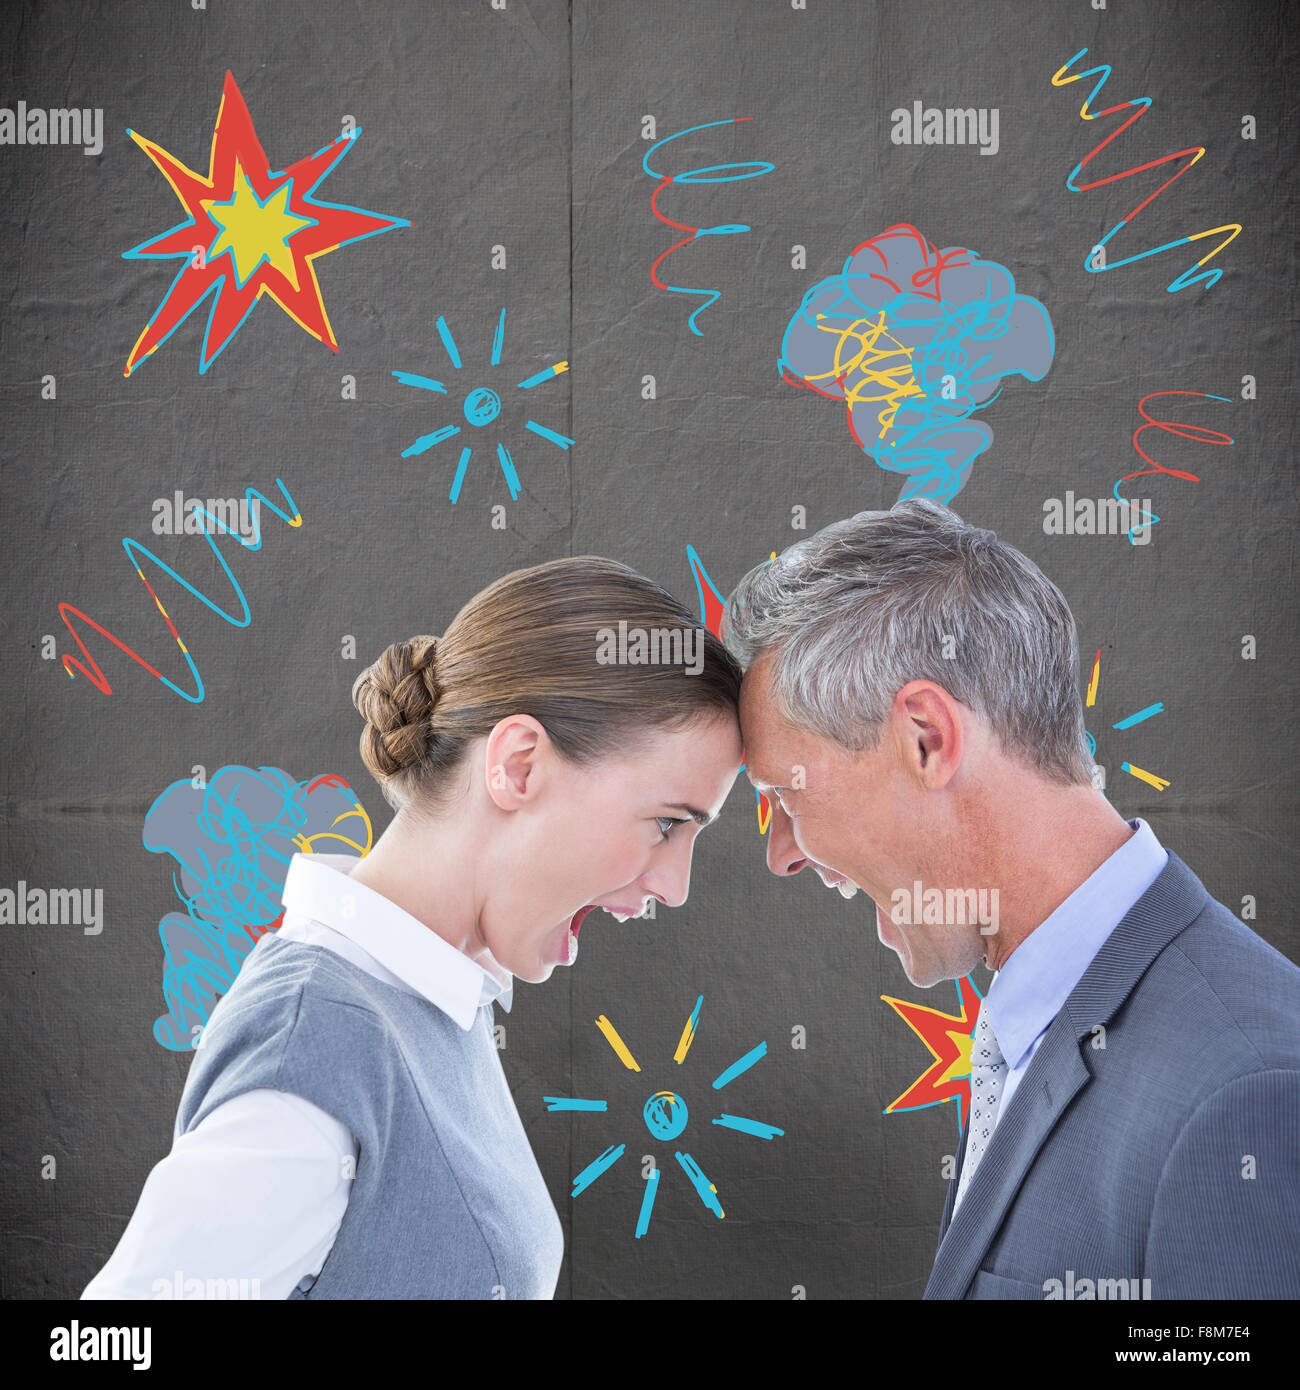 Composite image of business people yelling at each other over white background - Stock Image